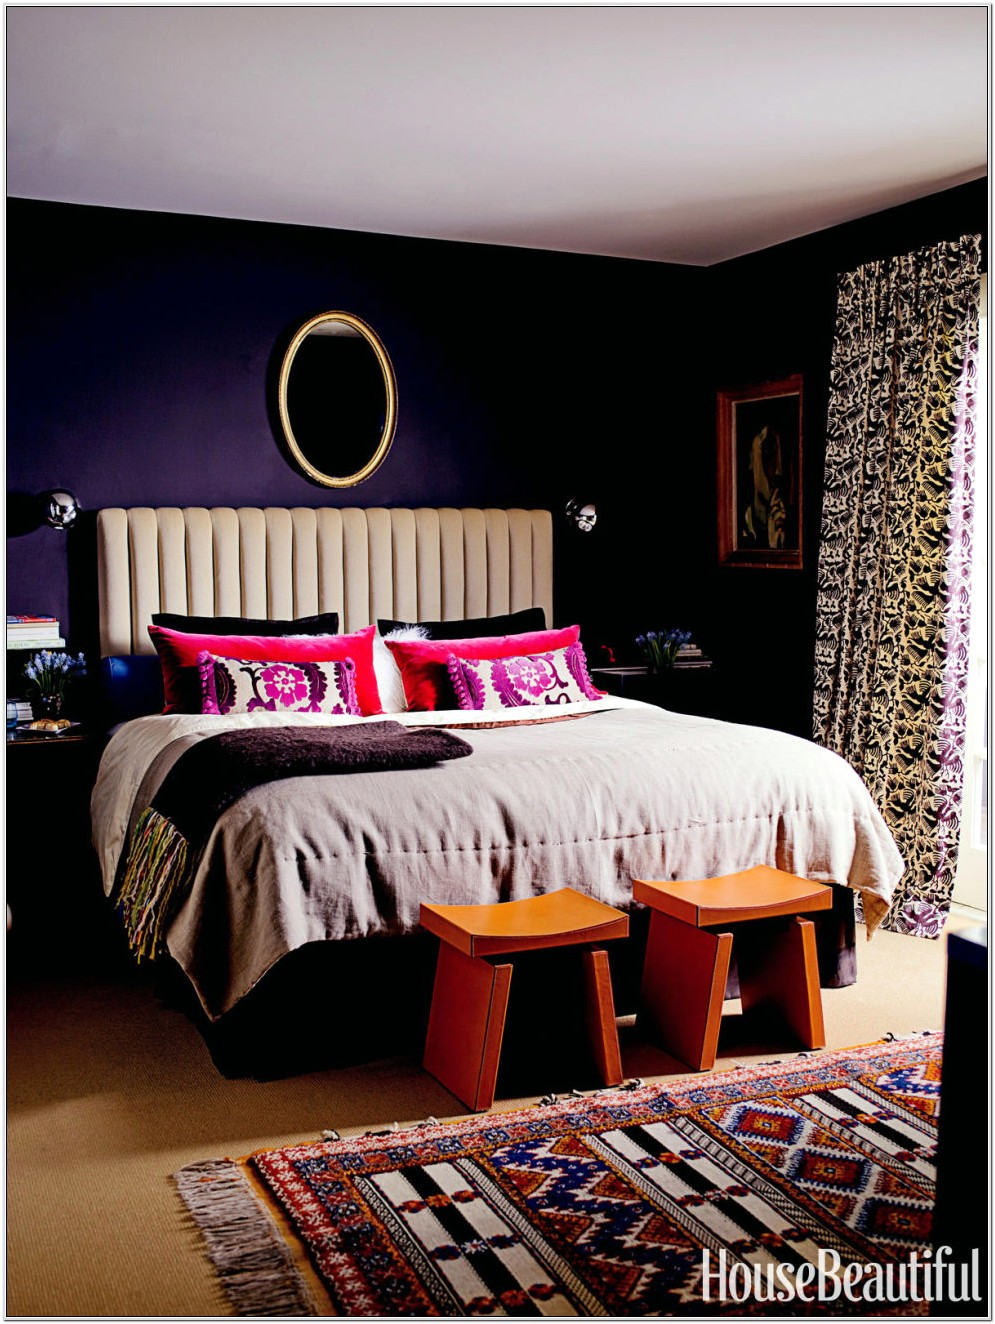 Interior Decorating For Bedrooms Small